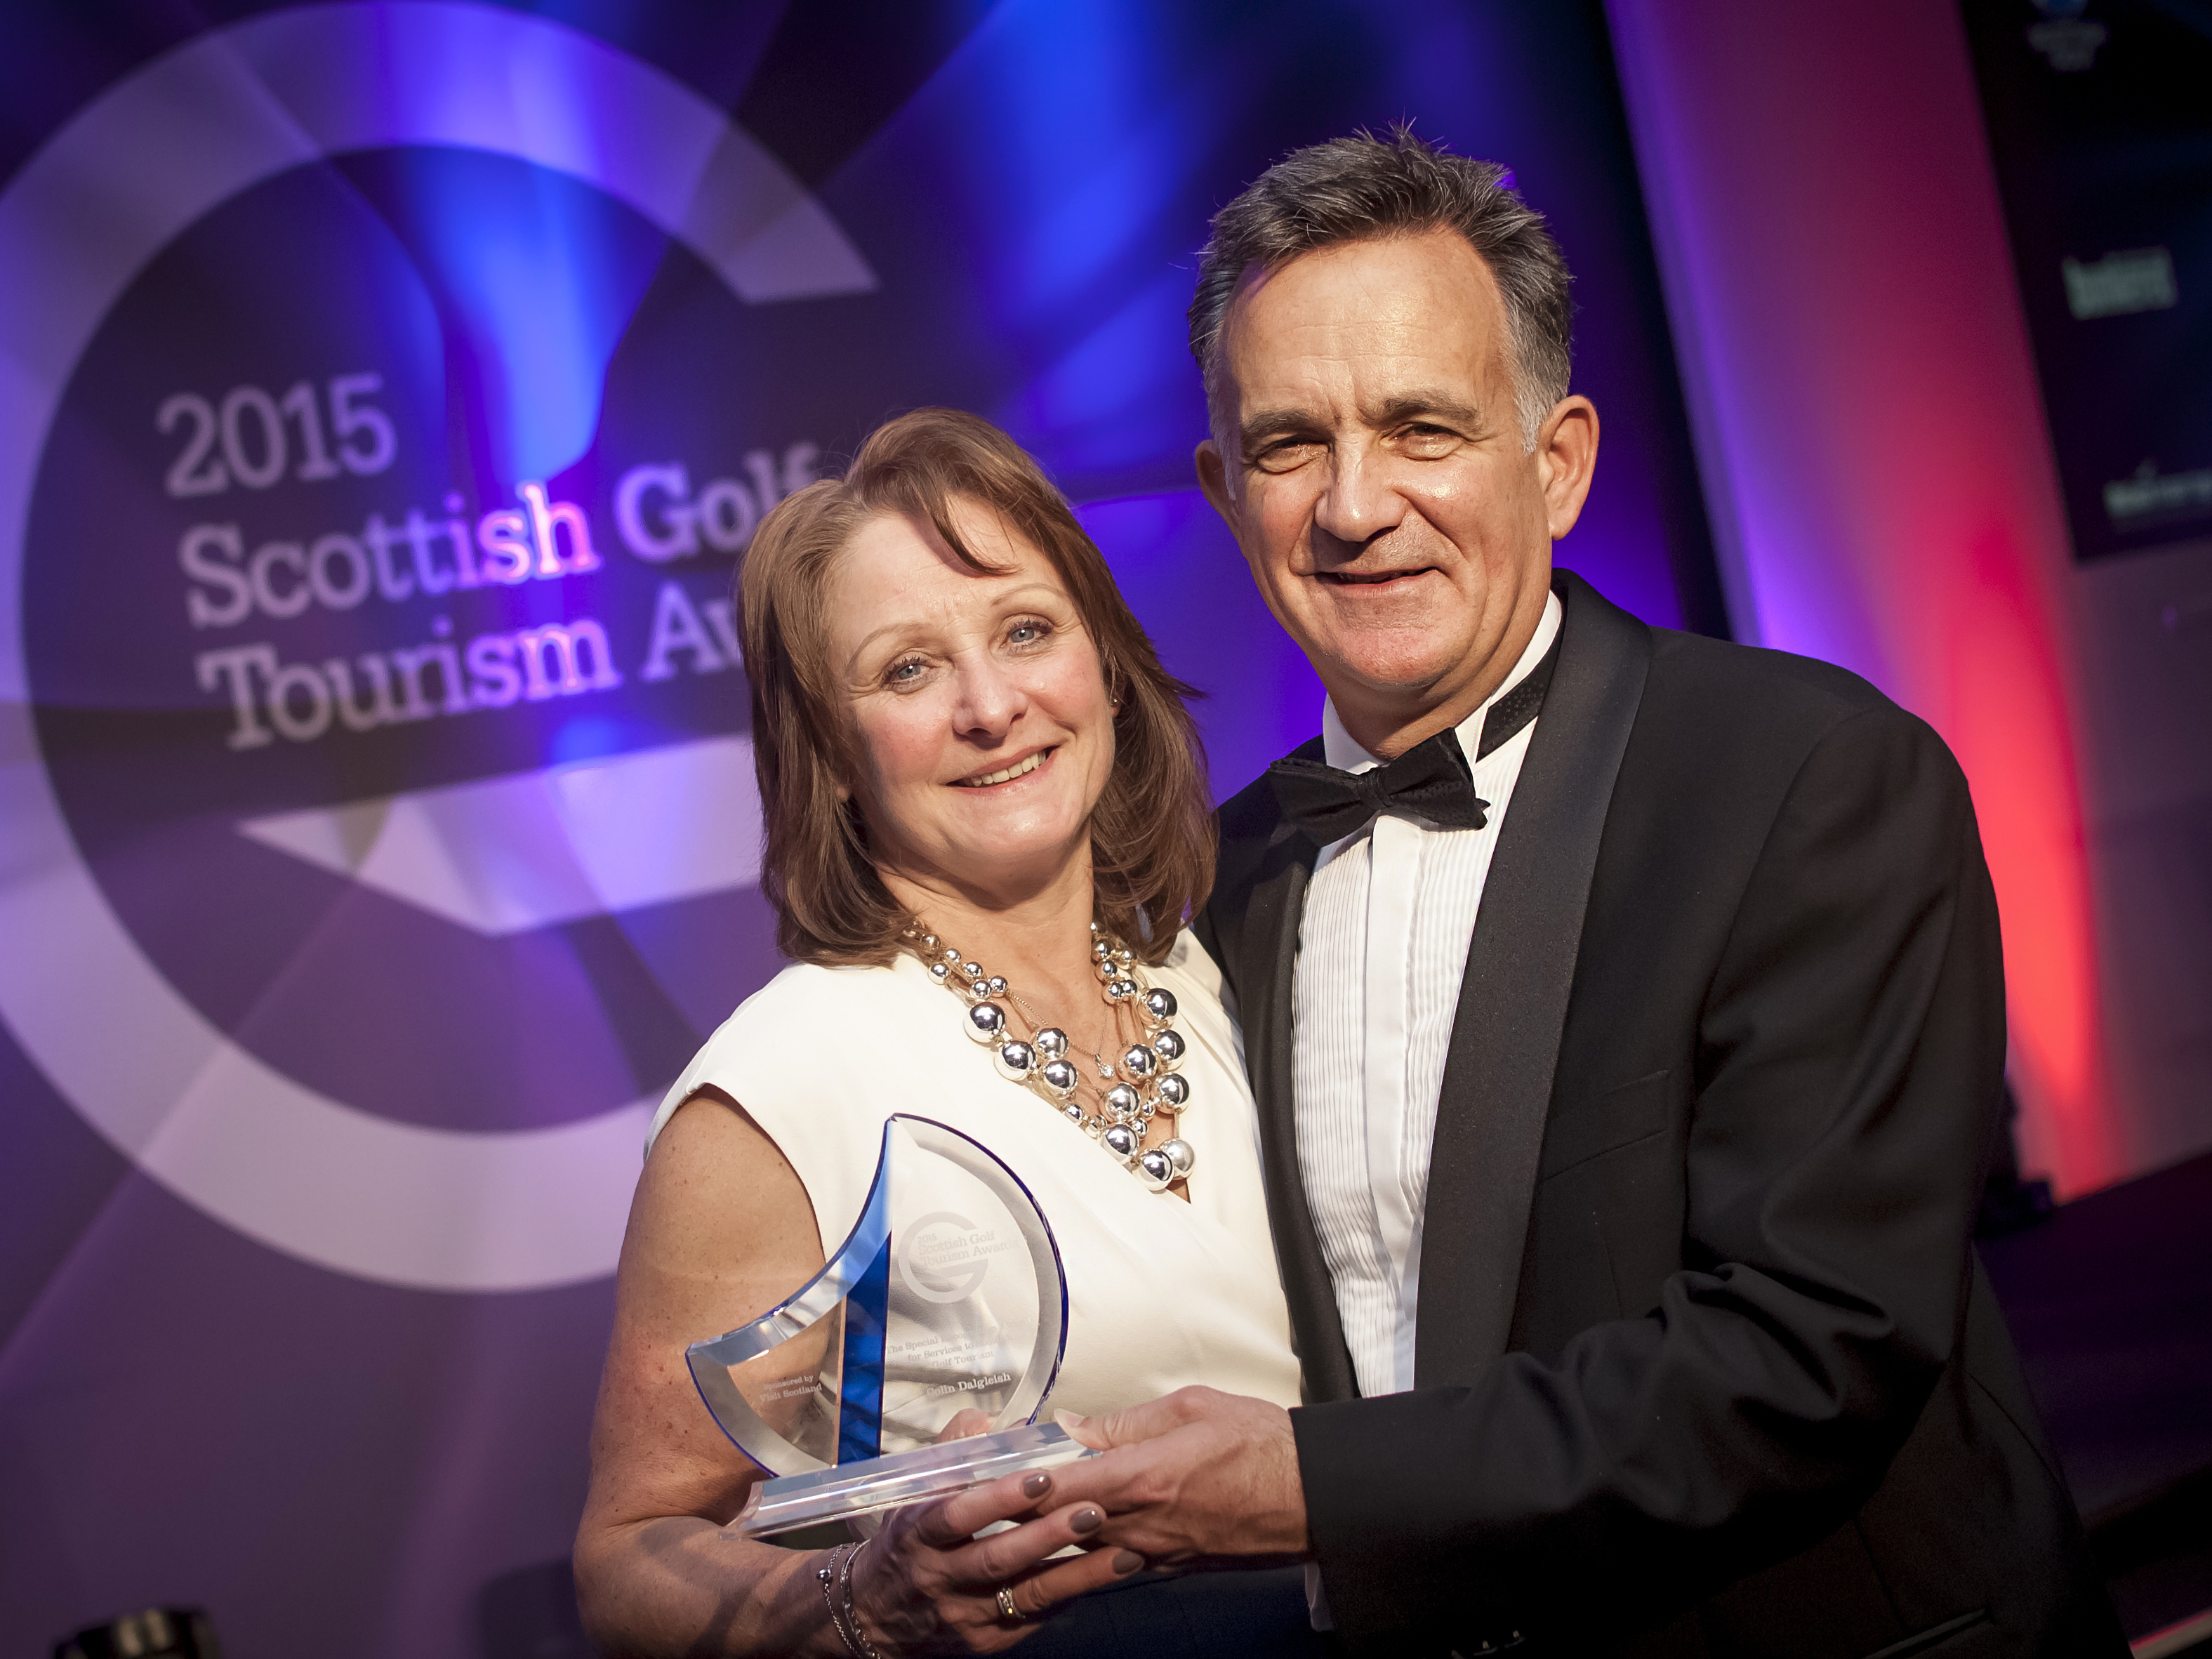 PerryGolf's Anne Filshie joins PerryGolf Co-Founder, Colin Dalgleish, in celebrating his receipt of a Special Recognition award at the 2015 Scottish Golf Tourism Awards